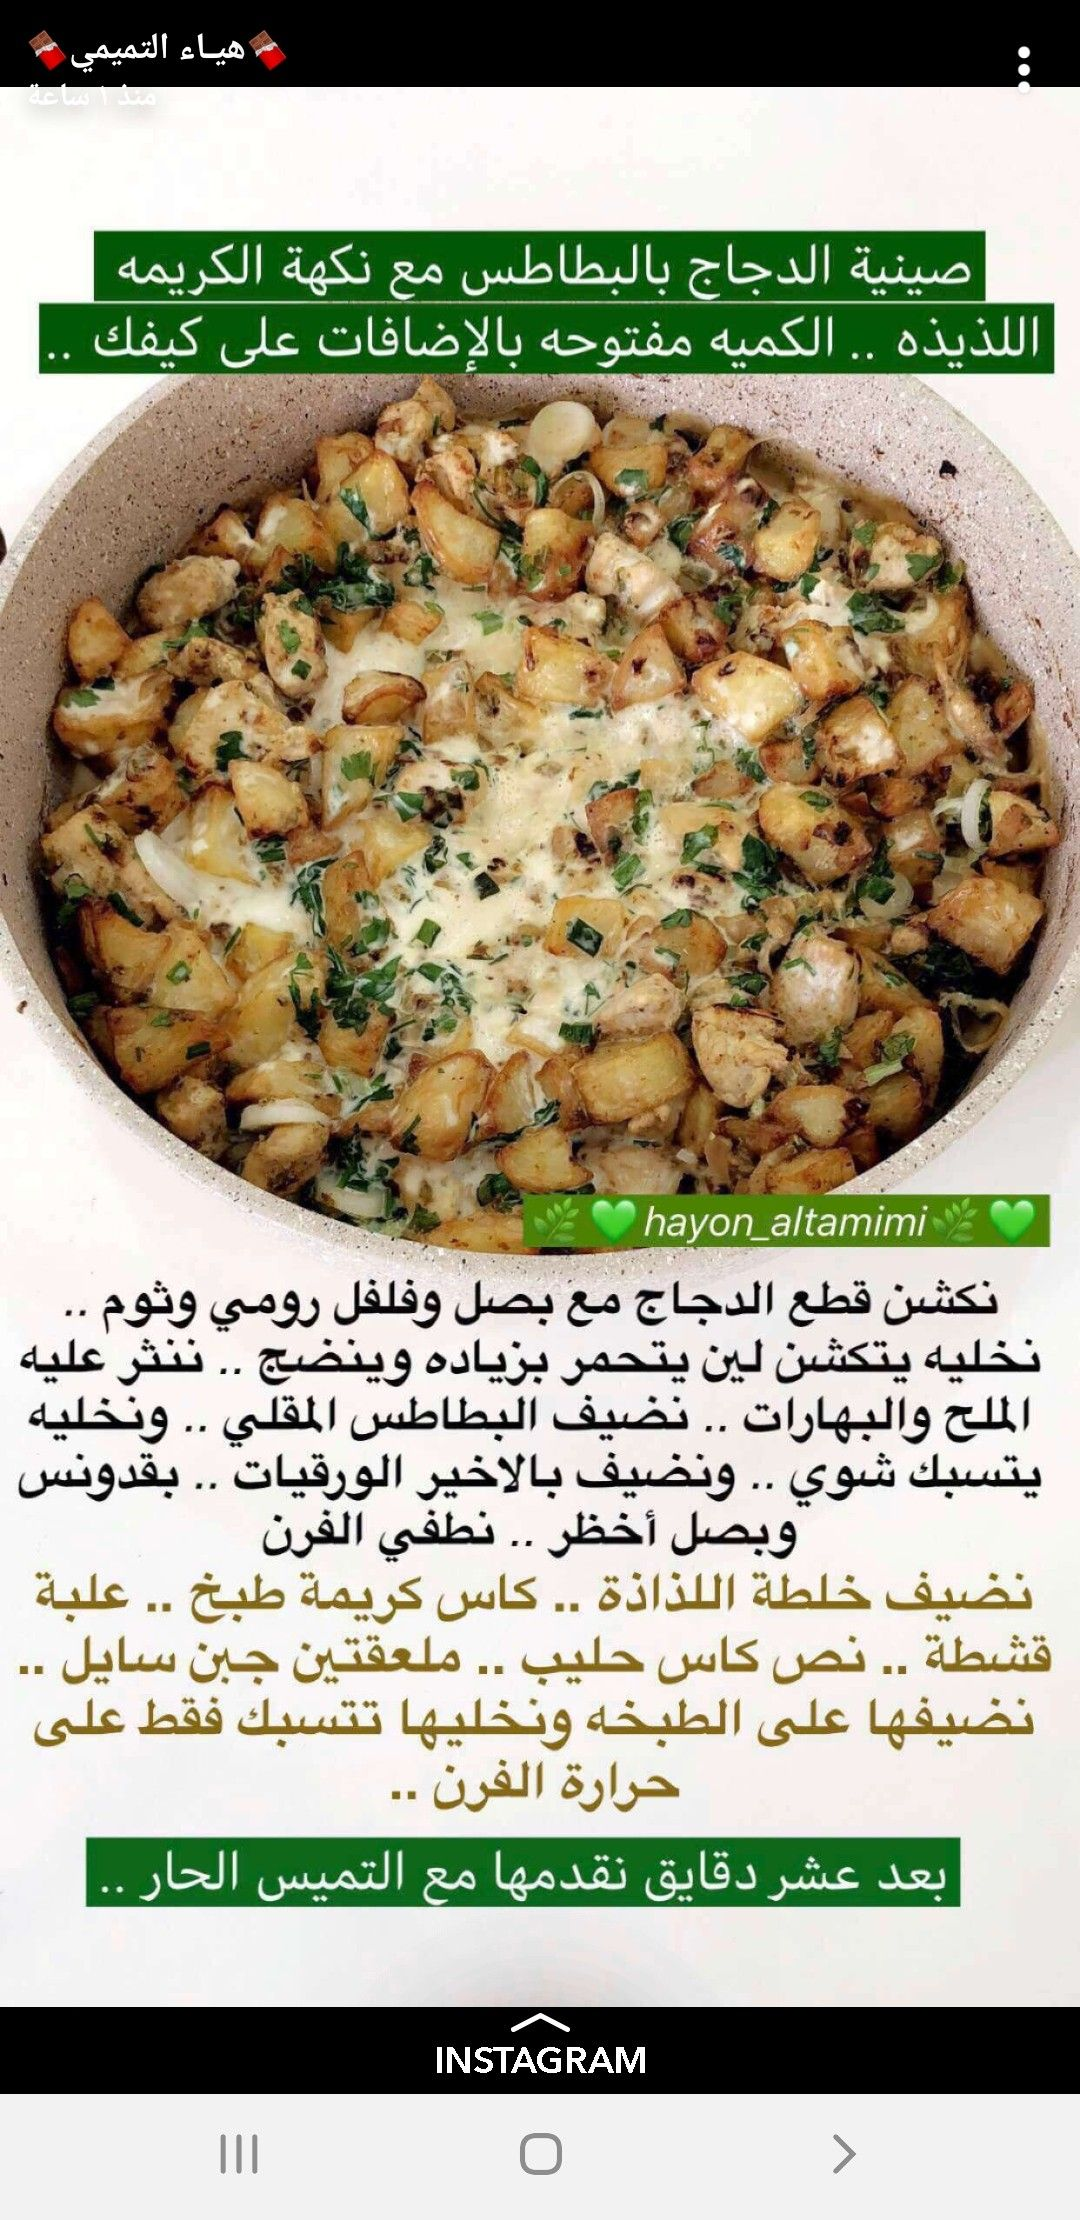 Pin By Boop Tyyodvff On اكلات وحلويات Food Dishes Cooking Recipes